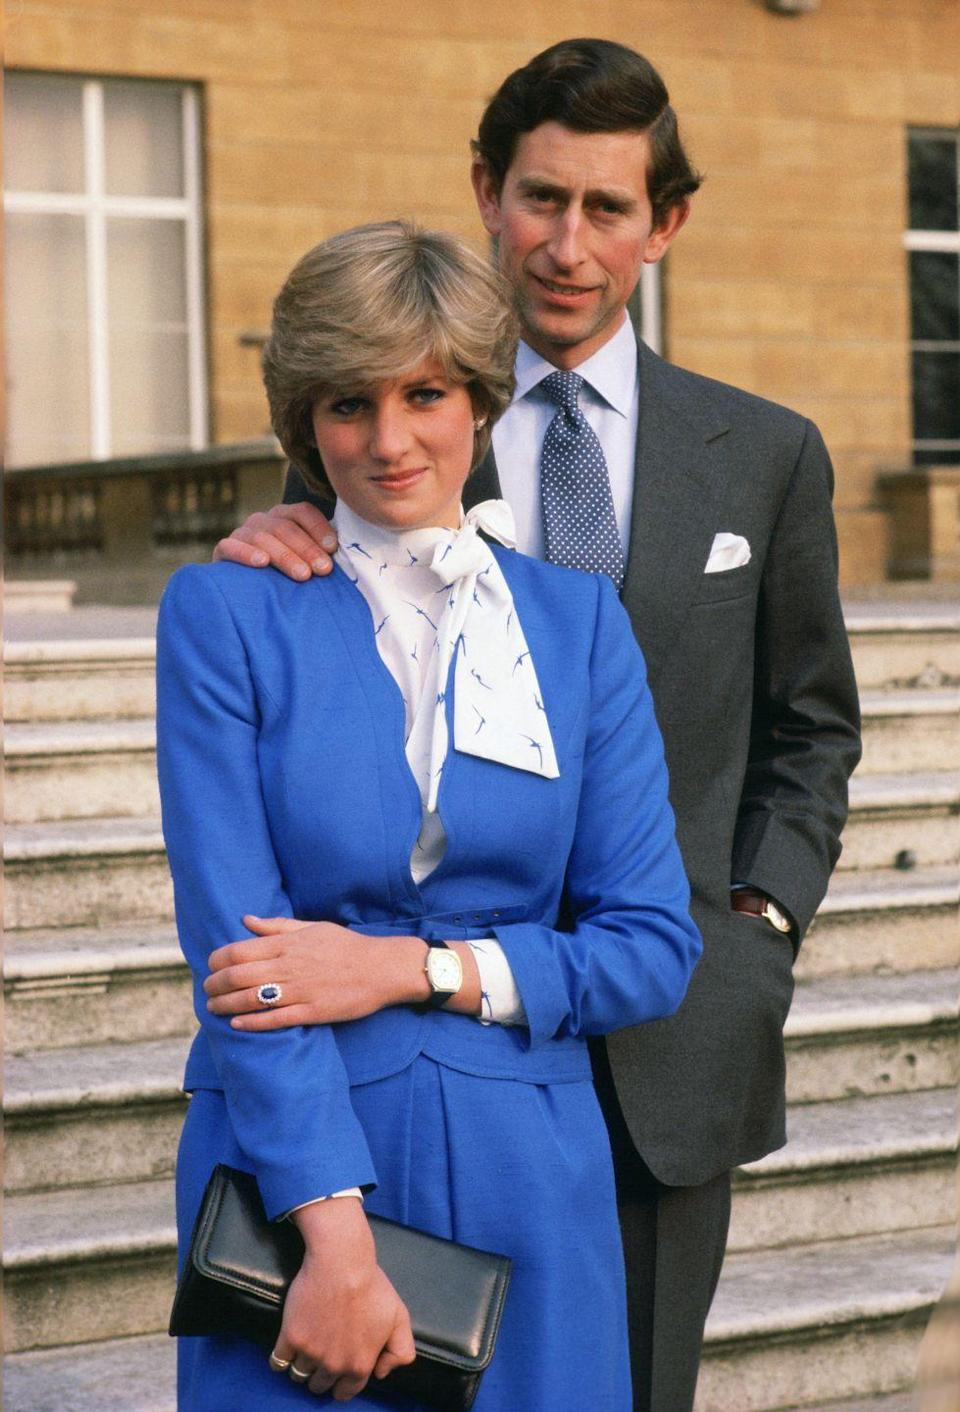 """<p>Lady Diana Spencer—later known as Diana, Princess of Wales—and Prince Charles pose outside Buckingham Palace to celebrate their engagement. The bride-to-be flaunts <a href=""""http://www.bbc.com/news/world-south-asia-13214228"""" rel=""""nofollow noopener"""" target=""""_blank"""" data-ylk=""""slk:her ring"""" class=""""link rapid-noclick-resp"""">her ring</a>, featuring an oval sapphire surrounded by blue diamonds.</p>"""